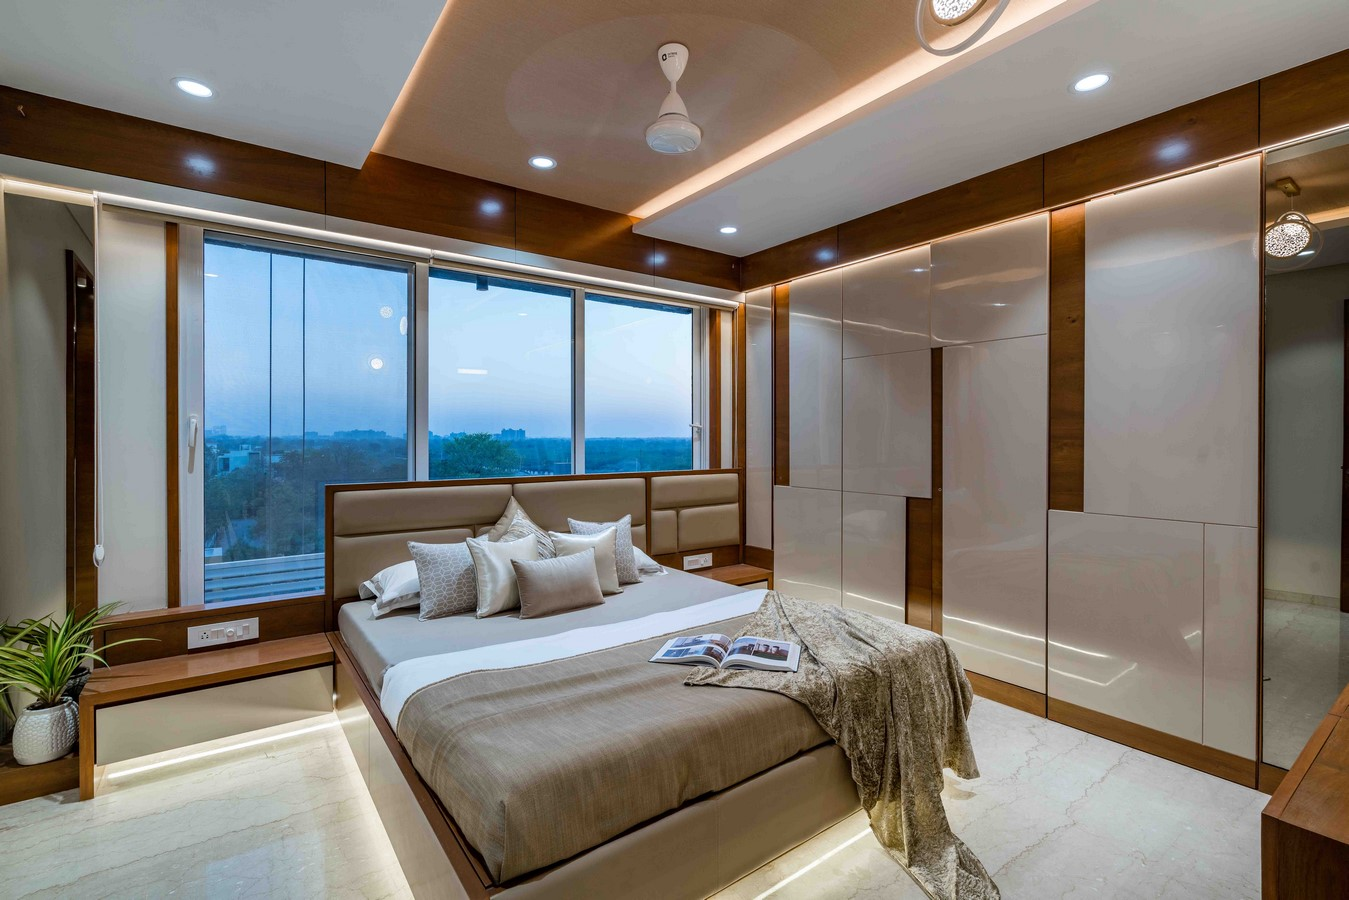 4 BHK Arjun Skylife Apartment by Shayona Consultant -Sheet3